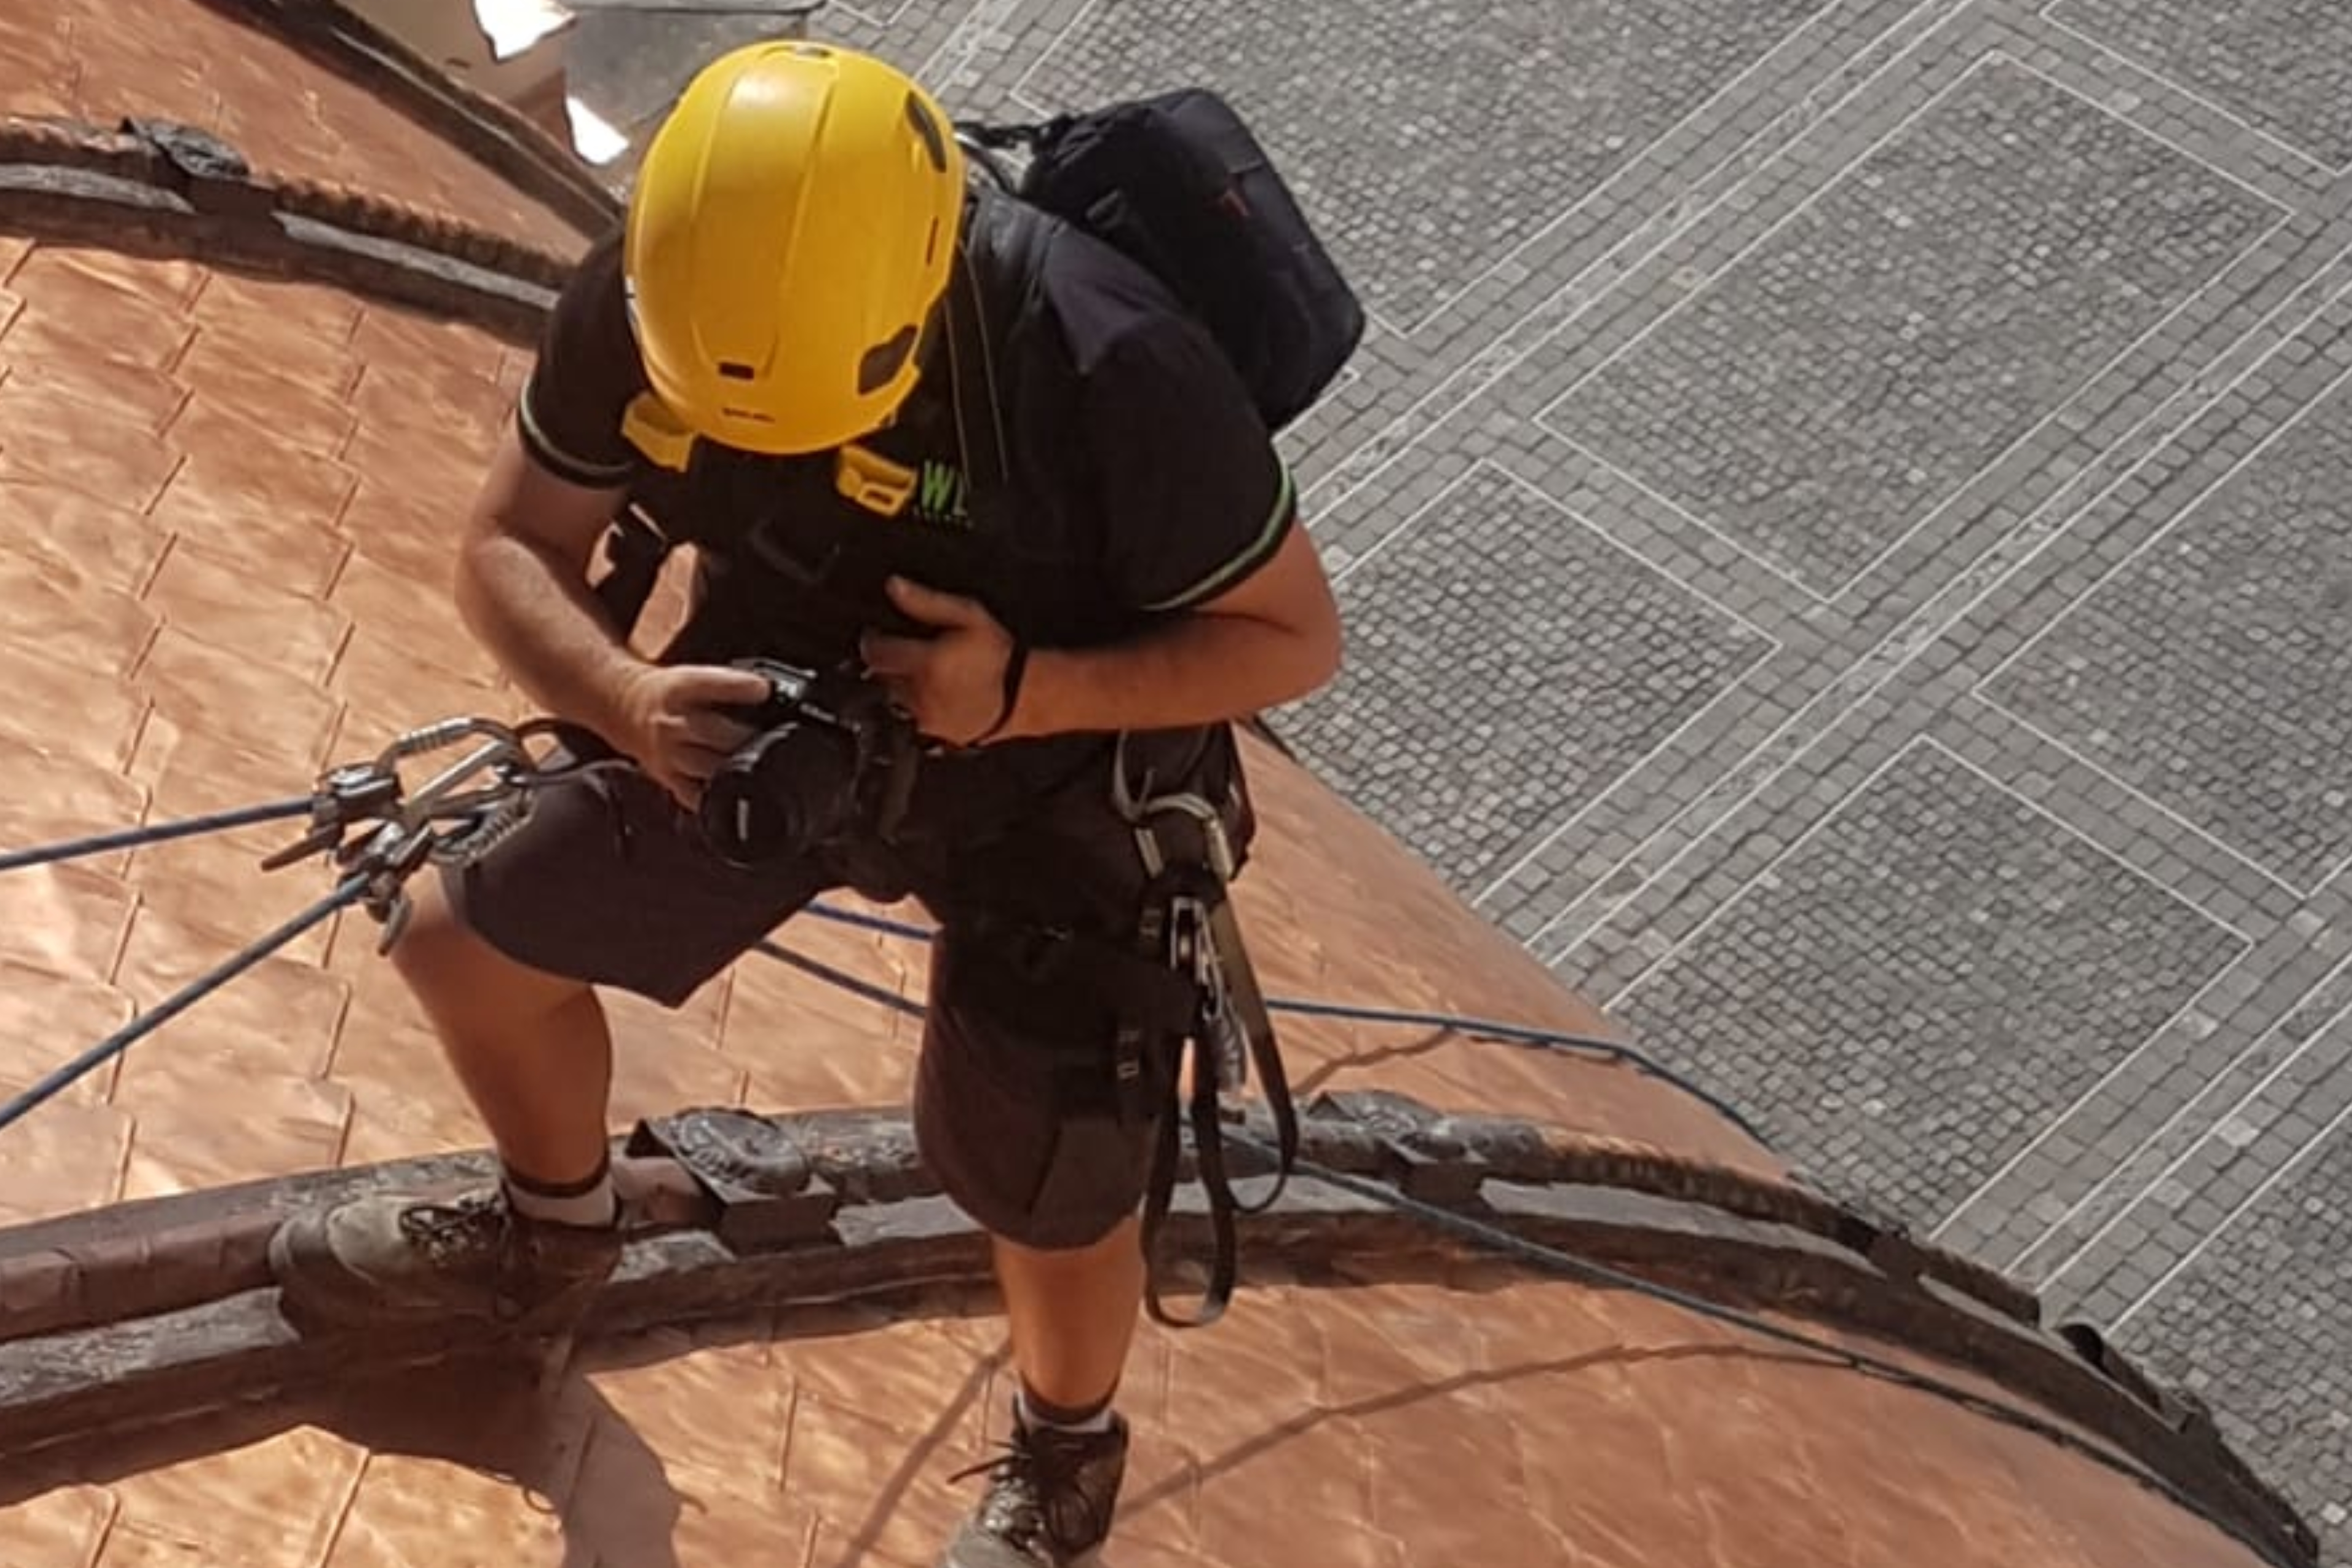 ALPINISM UTILITAR – SUPPORT INDUSTRY ROPE ACCESS - 0769830050